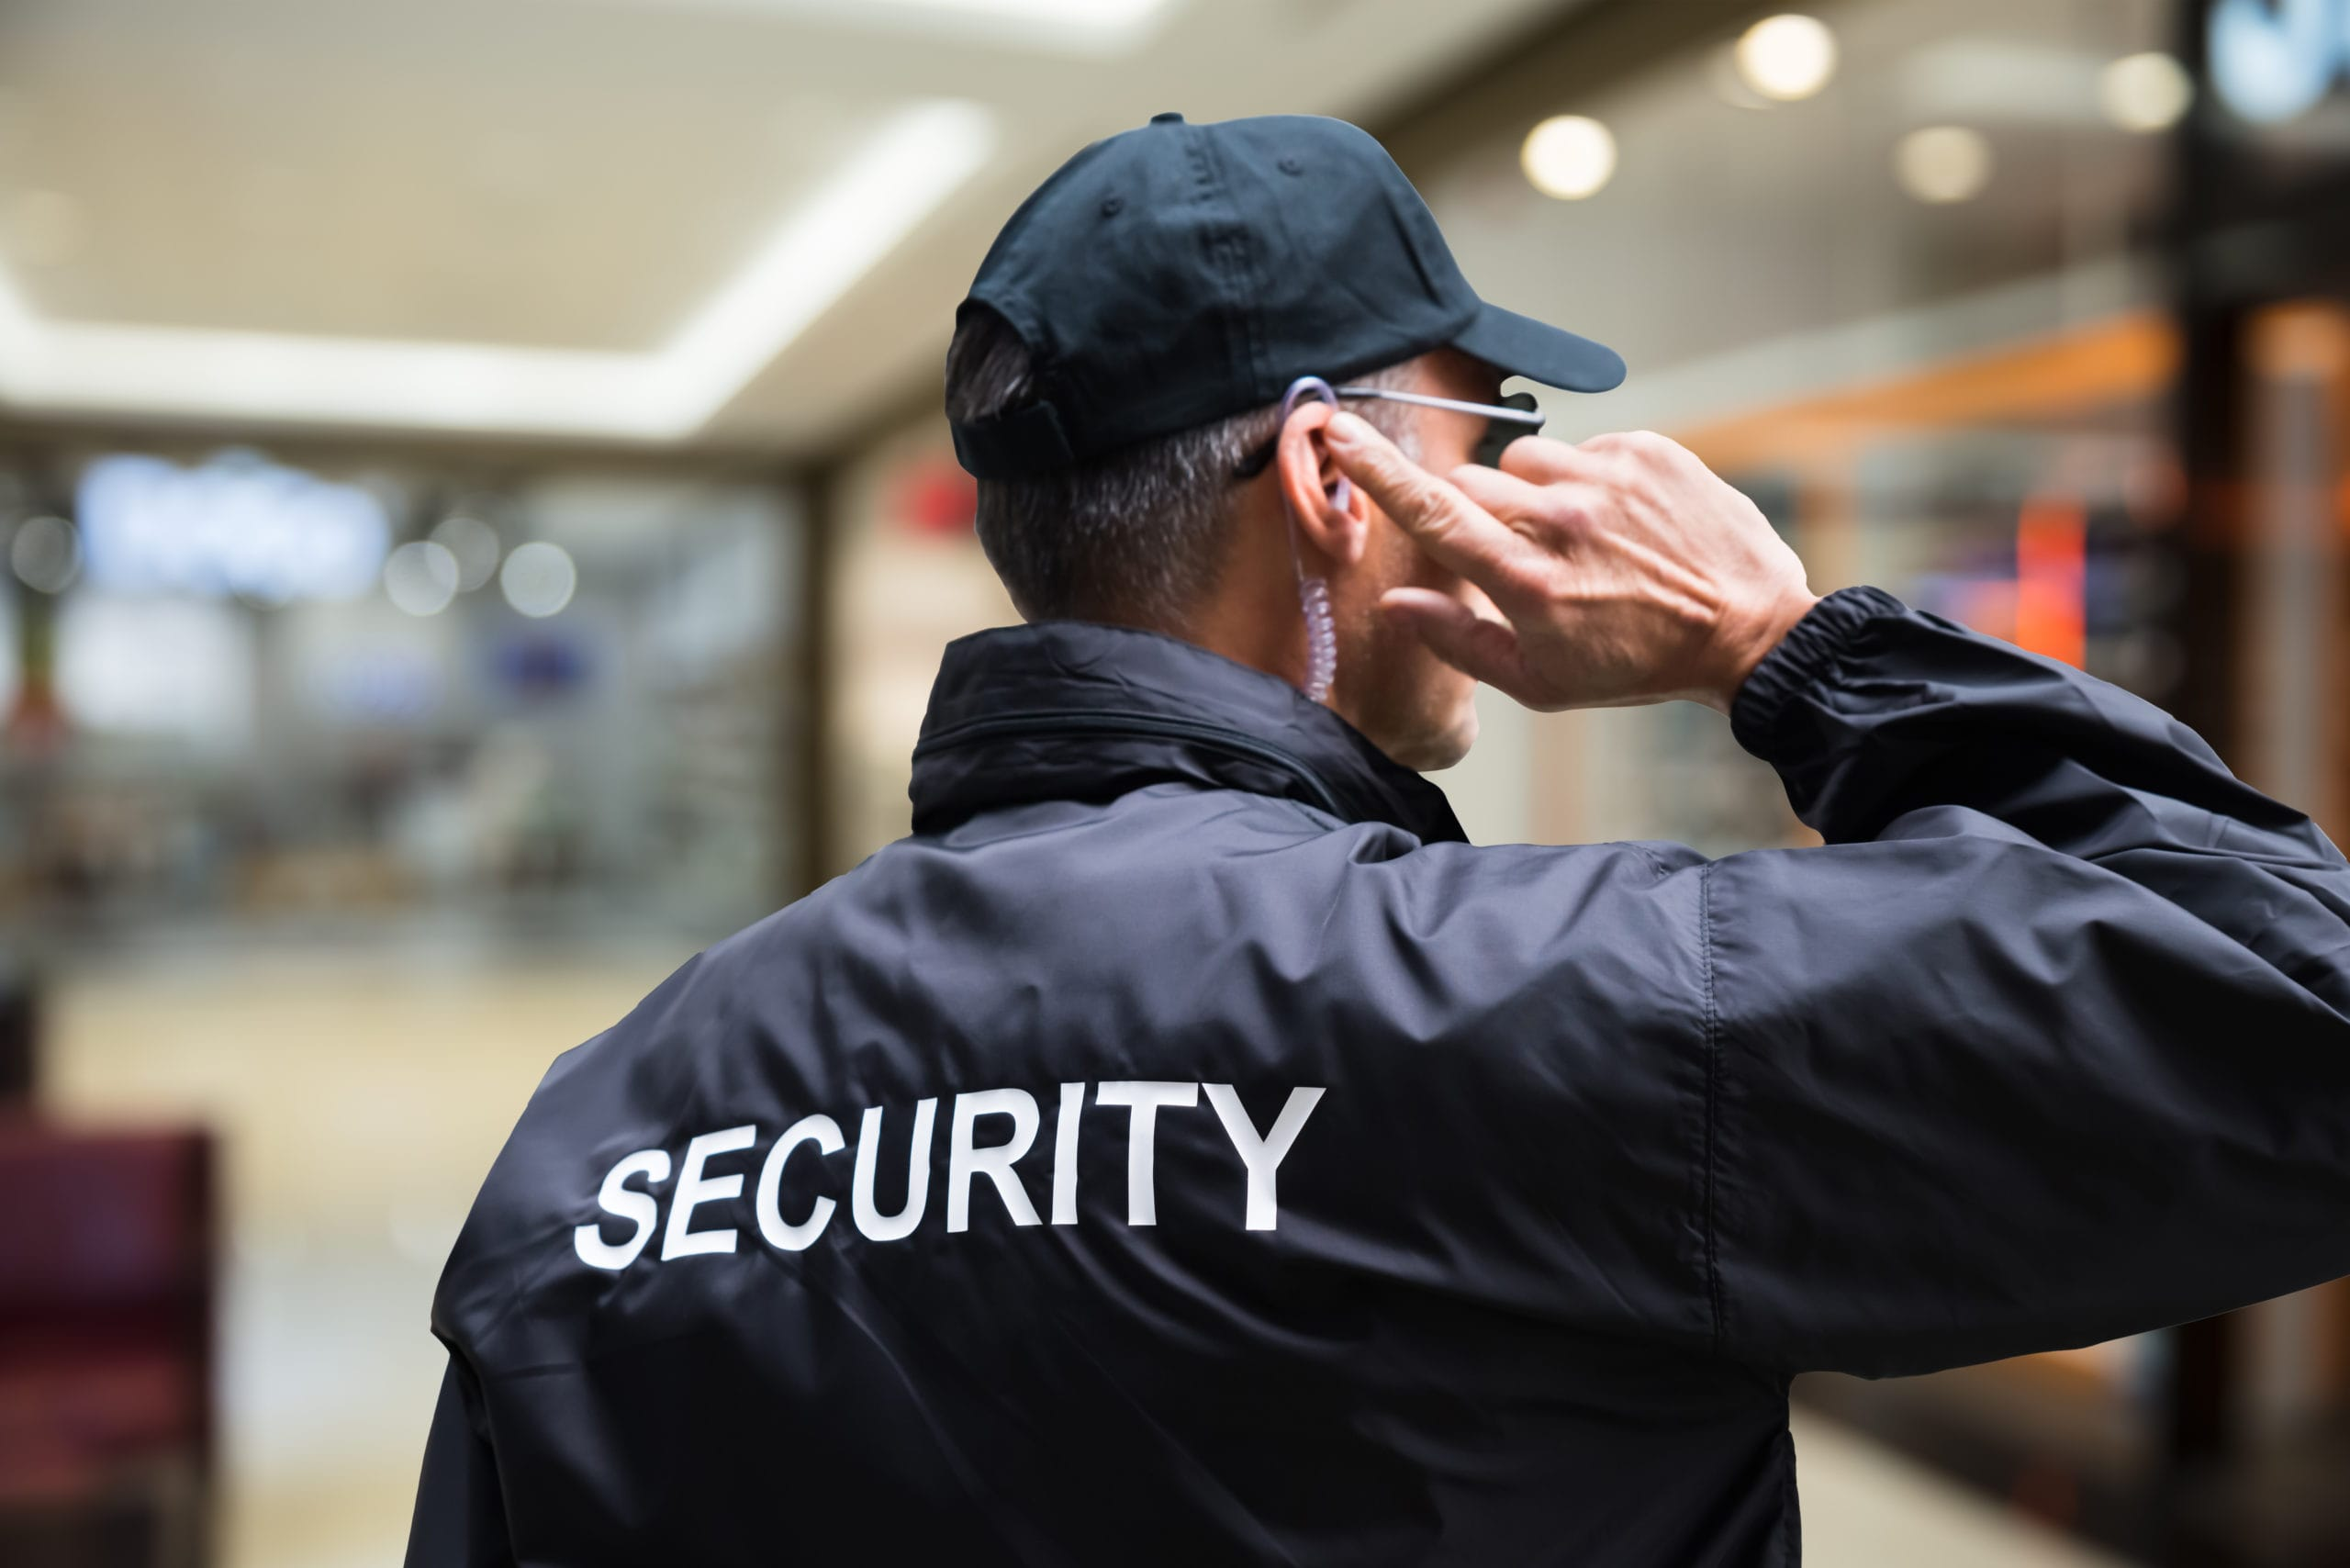 Security officer monitors the premises